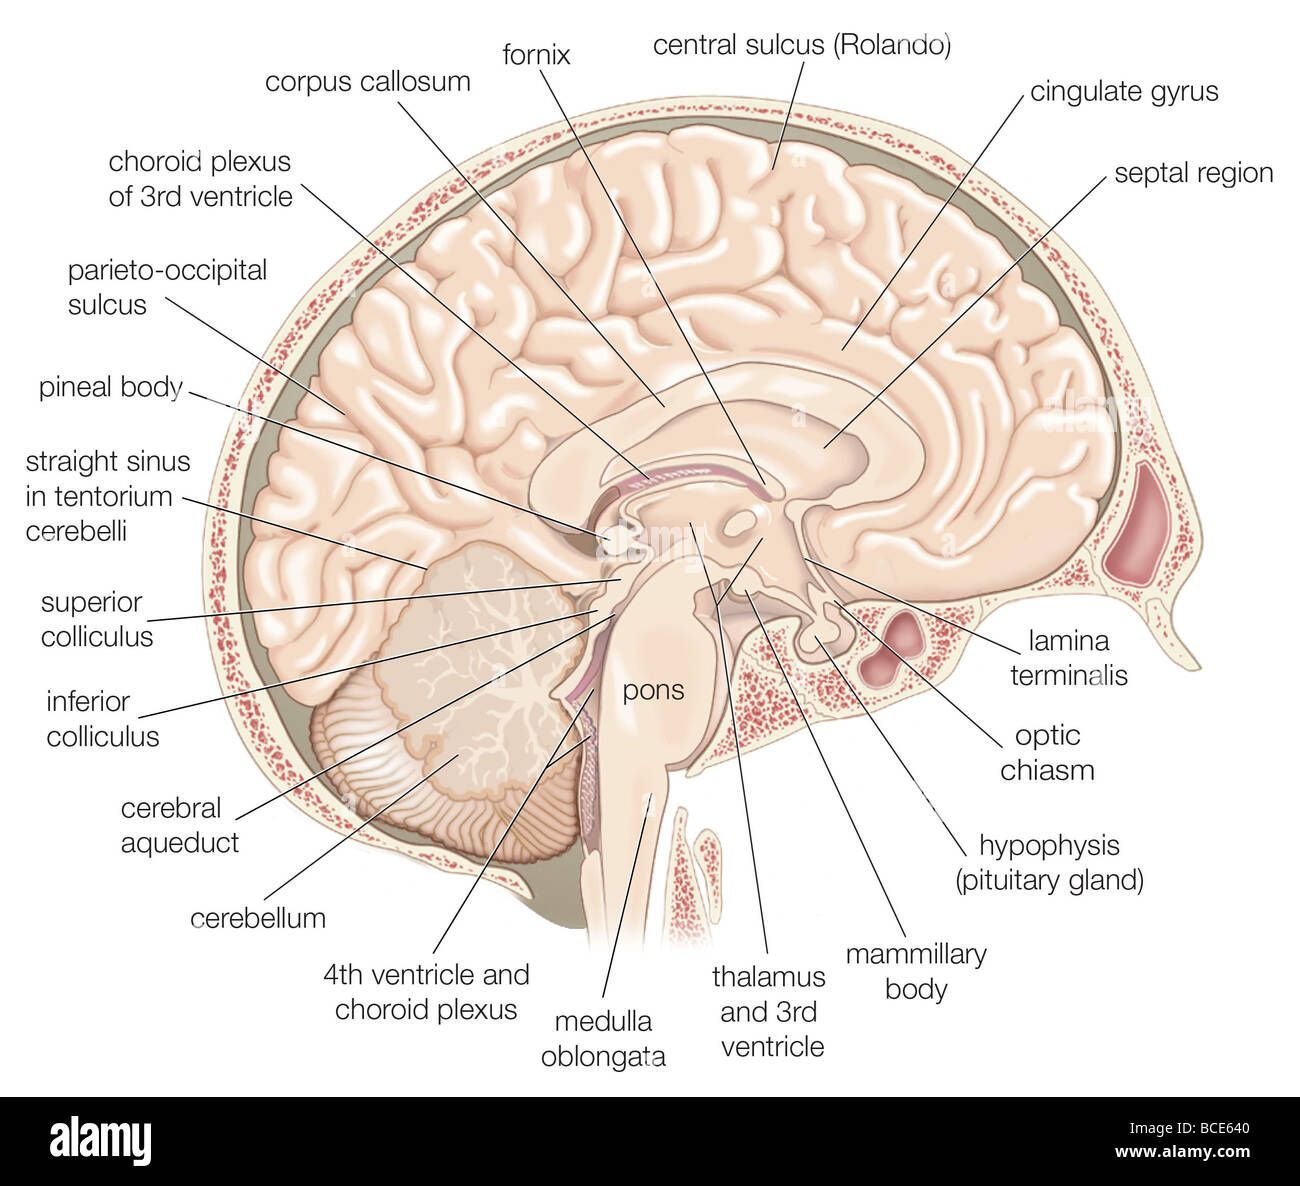 an analysis of the human brain Parts and functions of human brain parts and functions of human brain it interprets information that is used in sensory analysis or motor control.